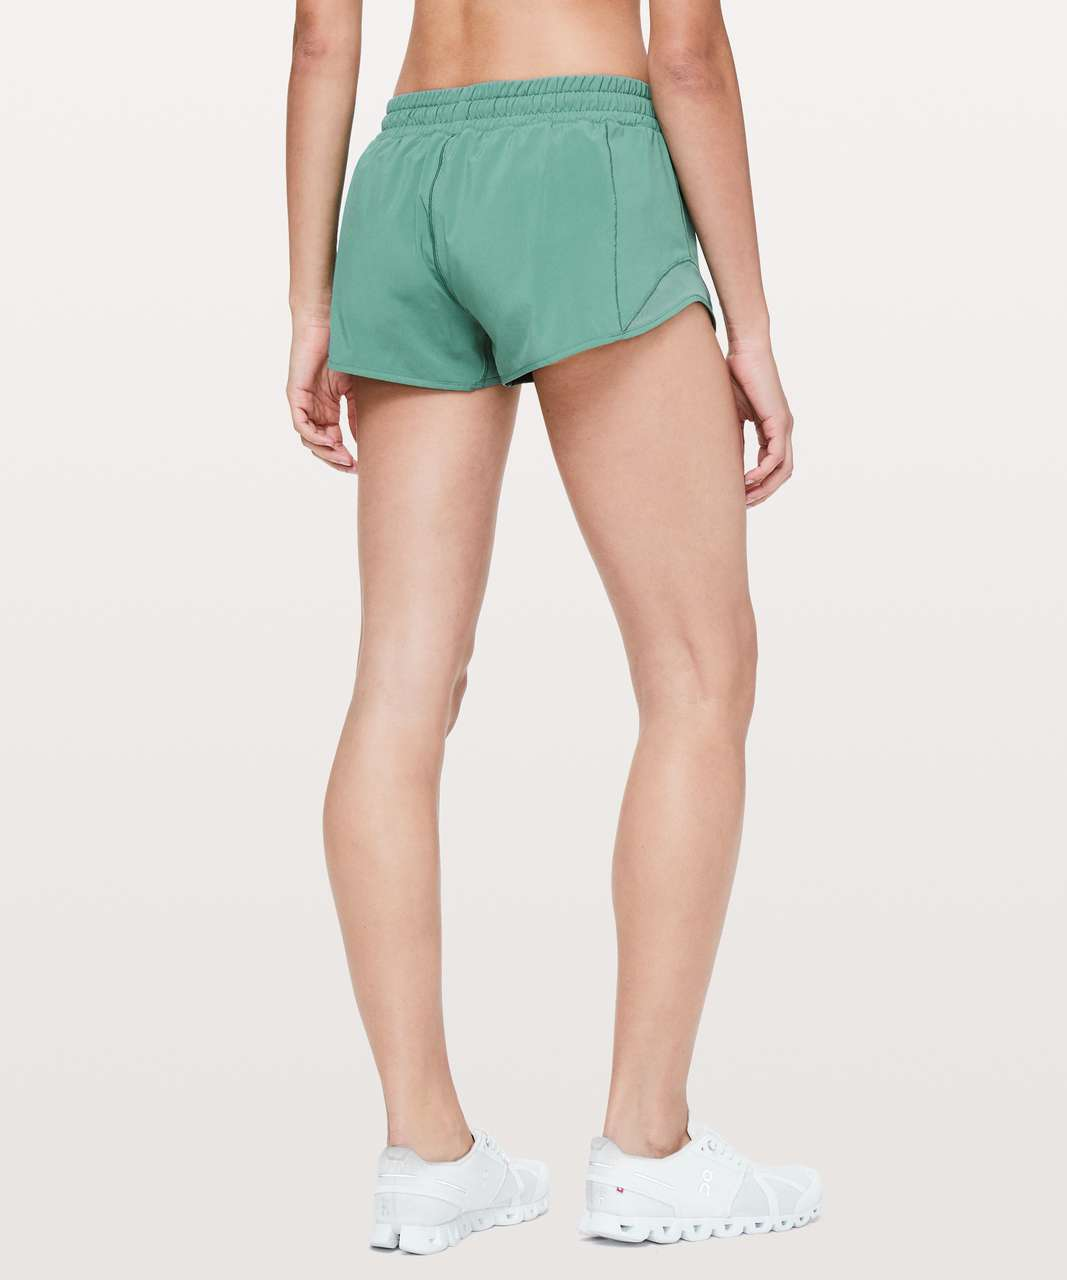 """Lululemon Hotty Hot Short II *2.5"""" - Frosted Pine (First Release)"""